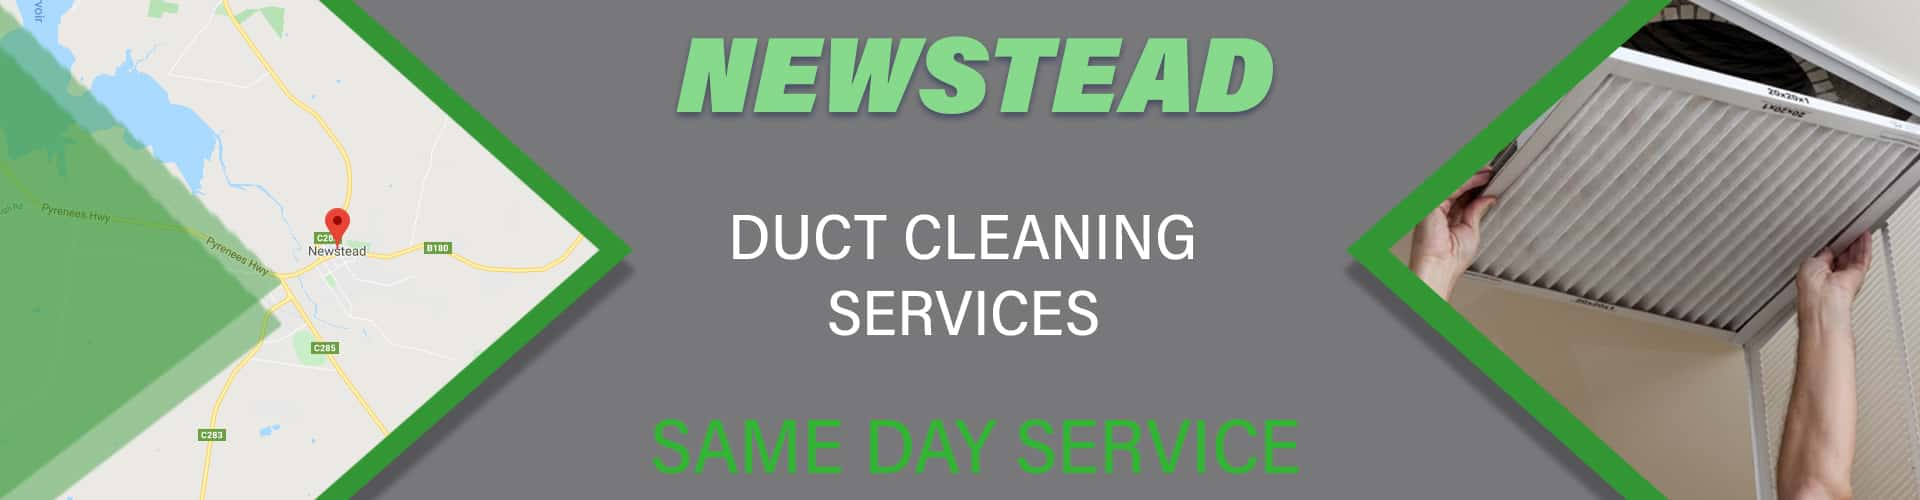 Duct Cleaning Newstead